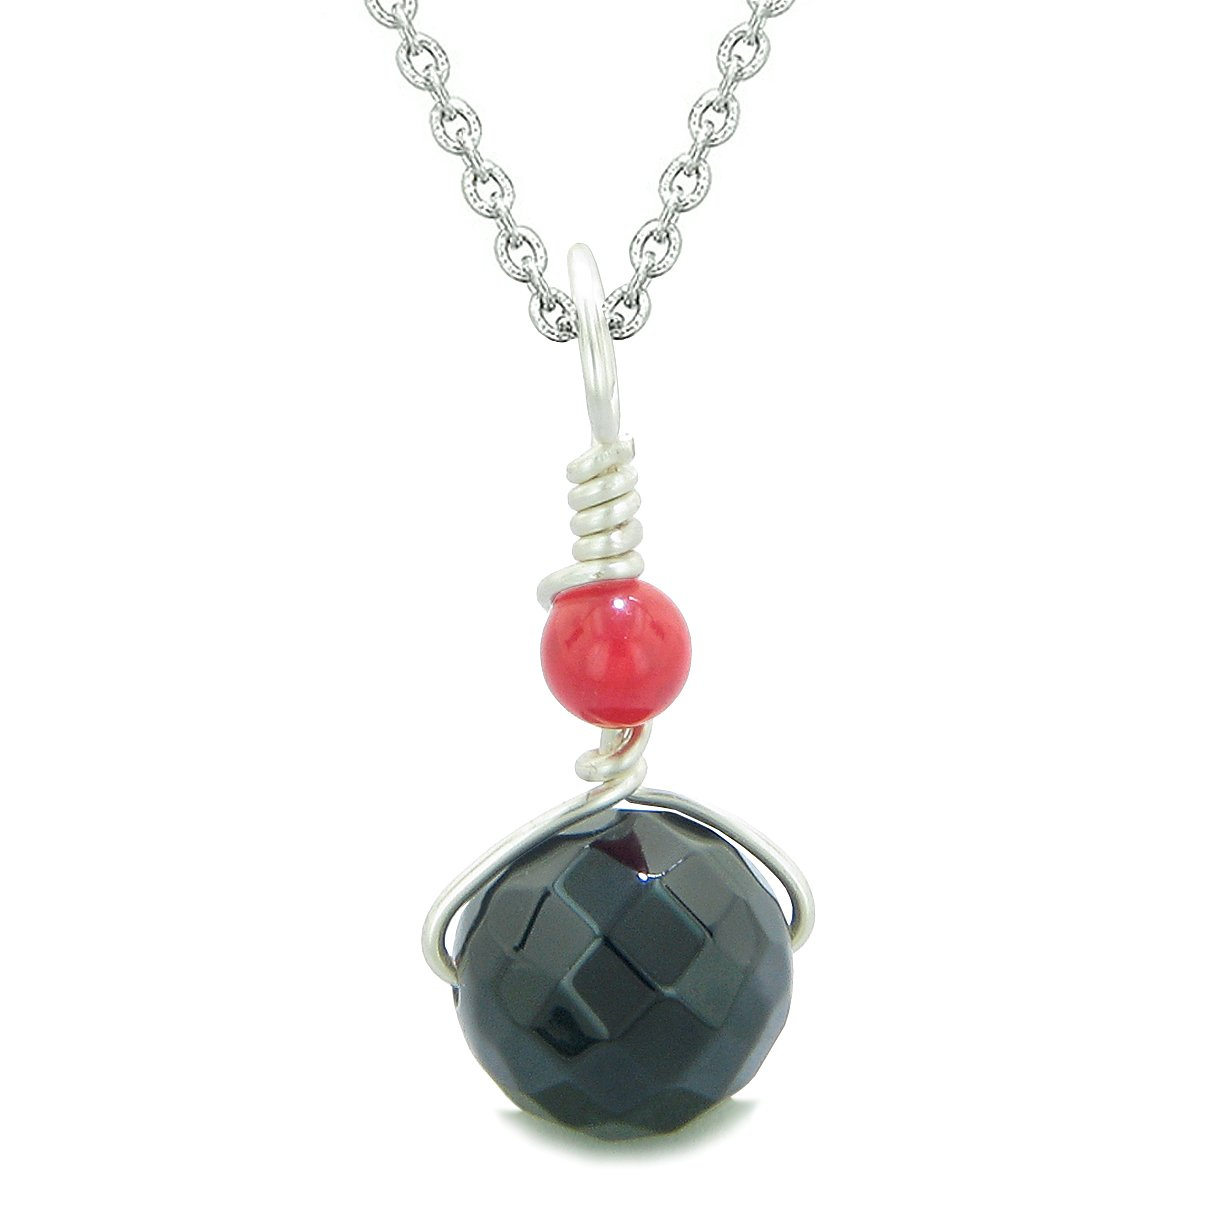 Double Lucky Wish Bead Amulet Faceted Black Onyx Red Quartz Lucky Charm Pendant 22 Inch Necklace